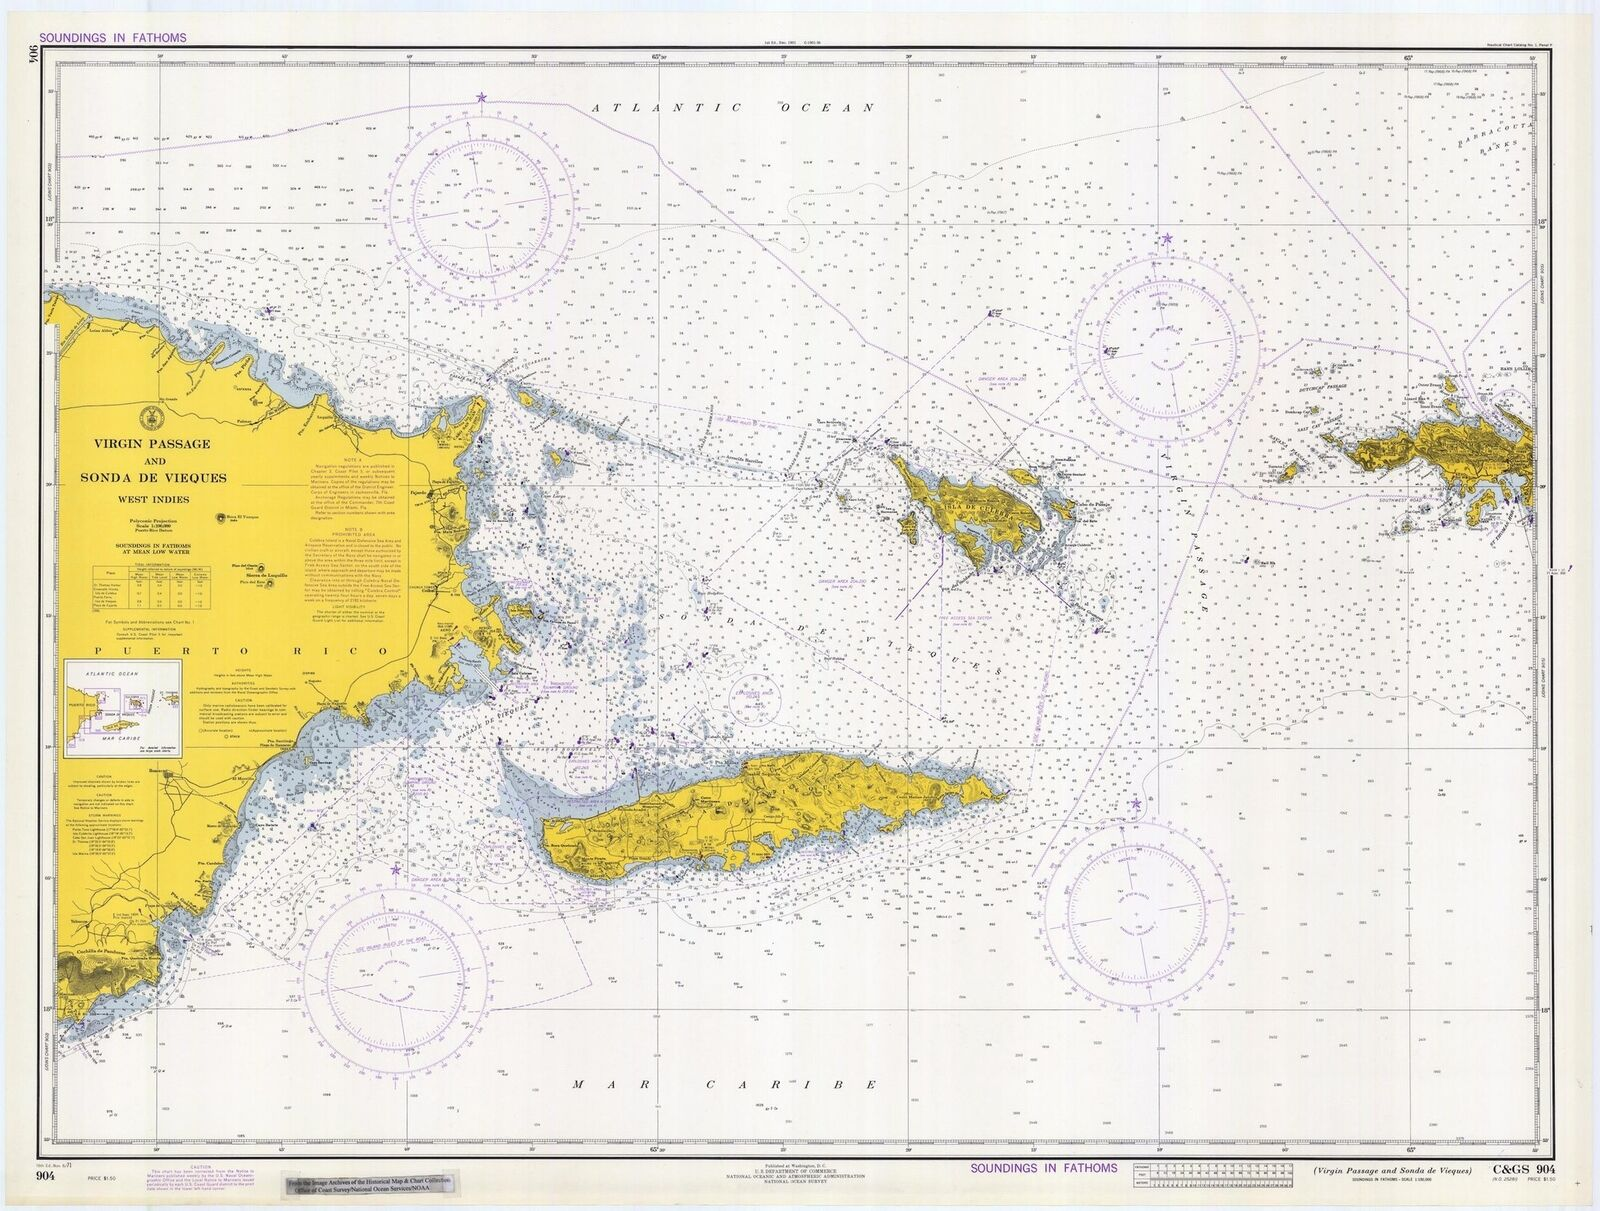 Puerto - Map Passage Islands Rico to St. Thomas Historical ...